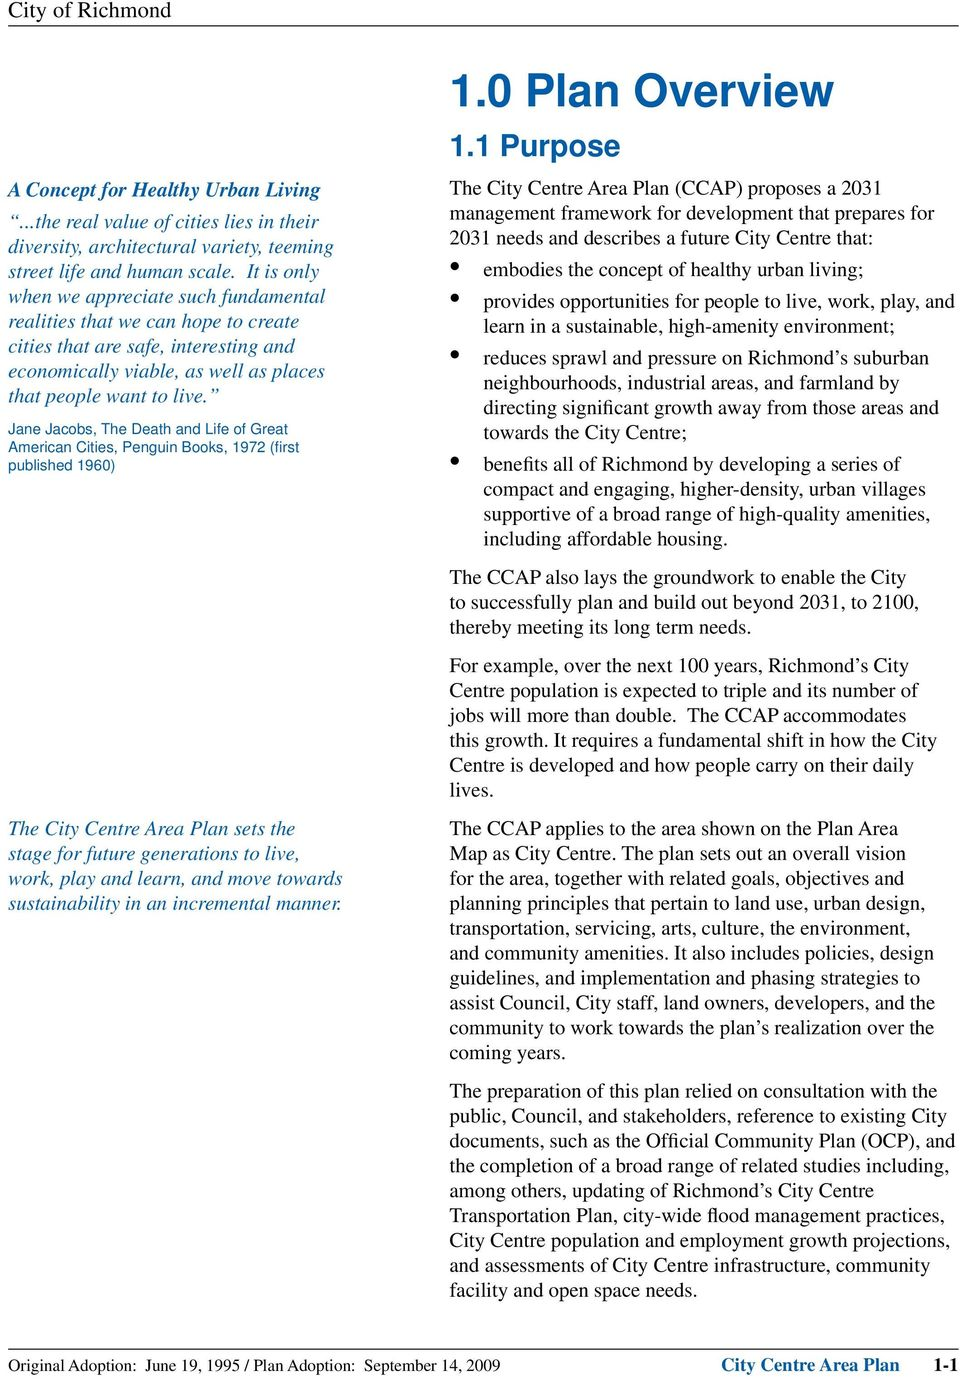 Jane Jacobs, The Death and Life of Great American Cities, Penguin Books, 1972 (fi rst published 1960) 1.0 Plan Overview 1.